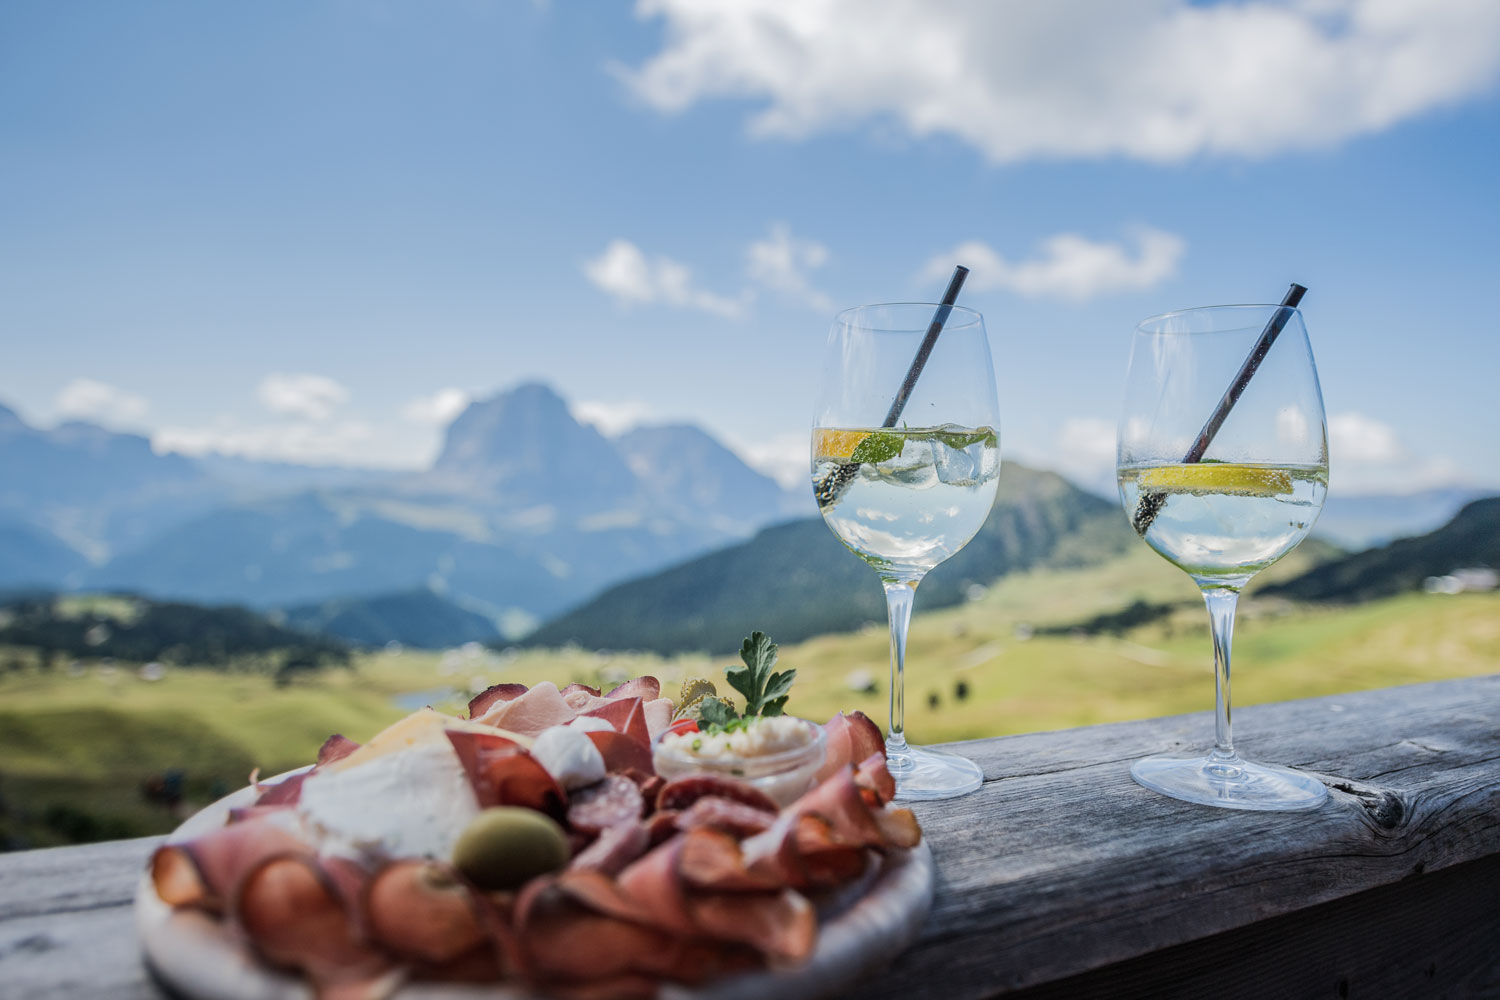 South Tyrol food plate with view in background